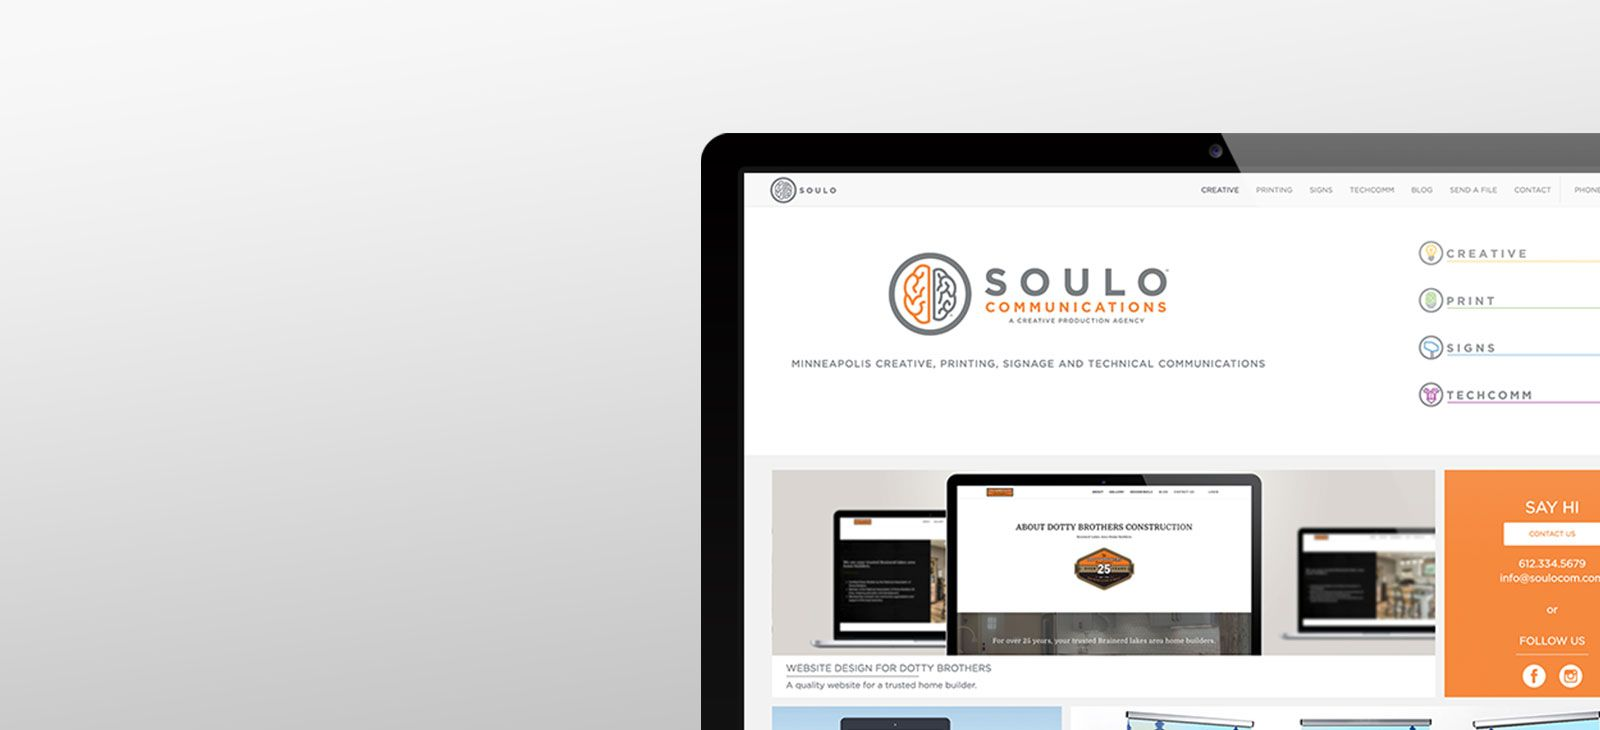 Commers Printing has now merged with Soulo Communications